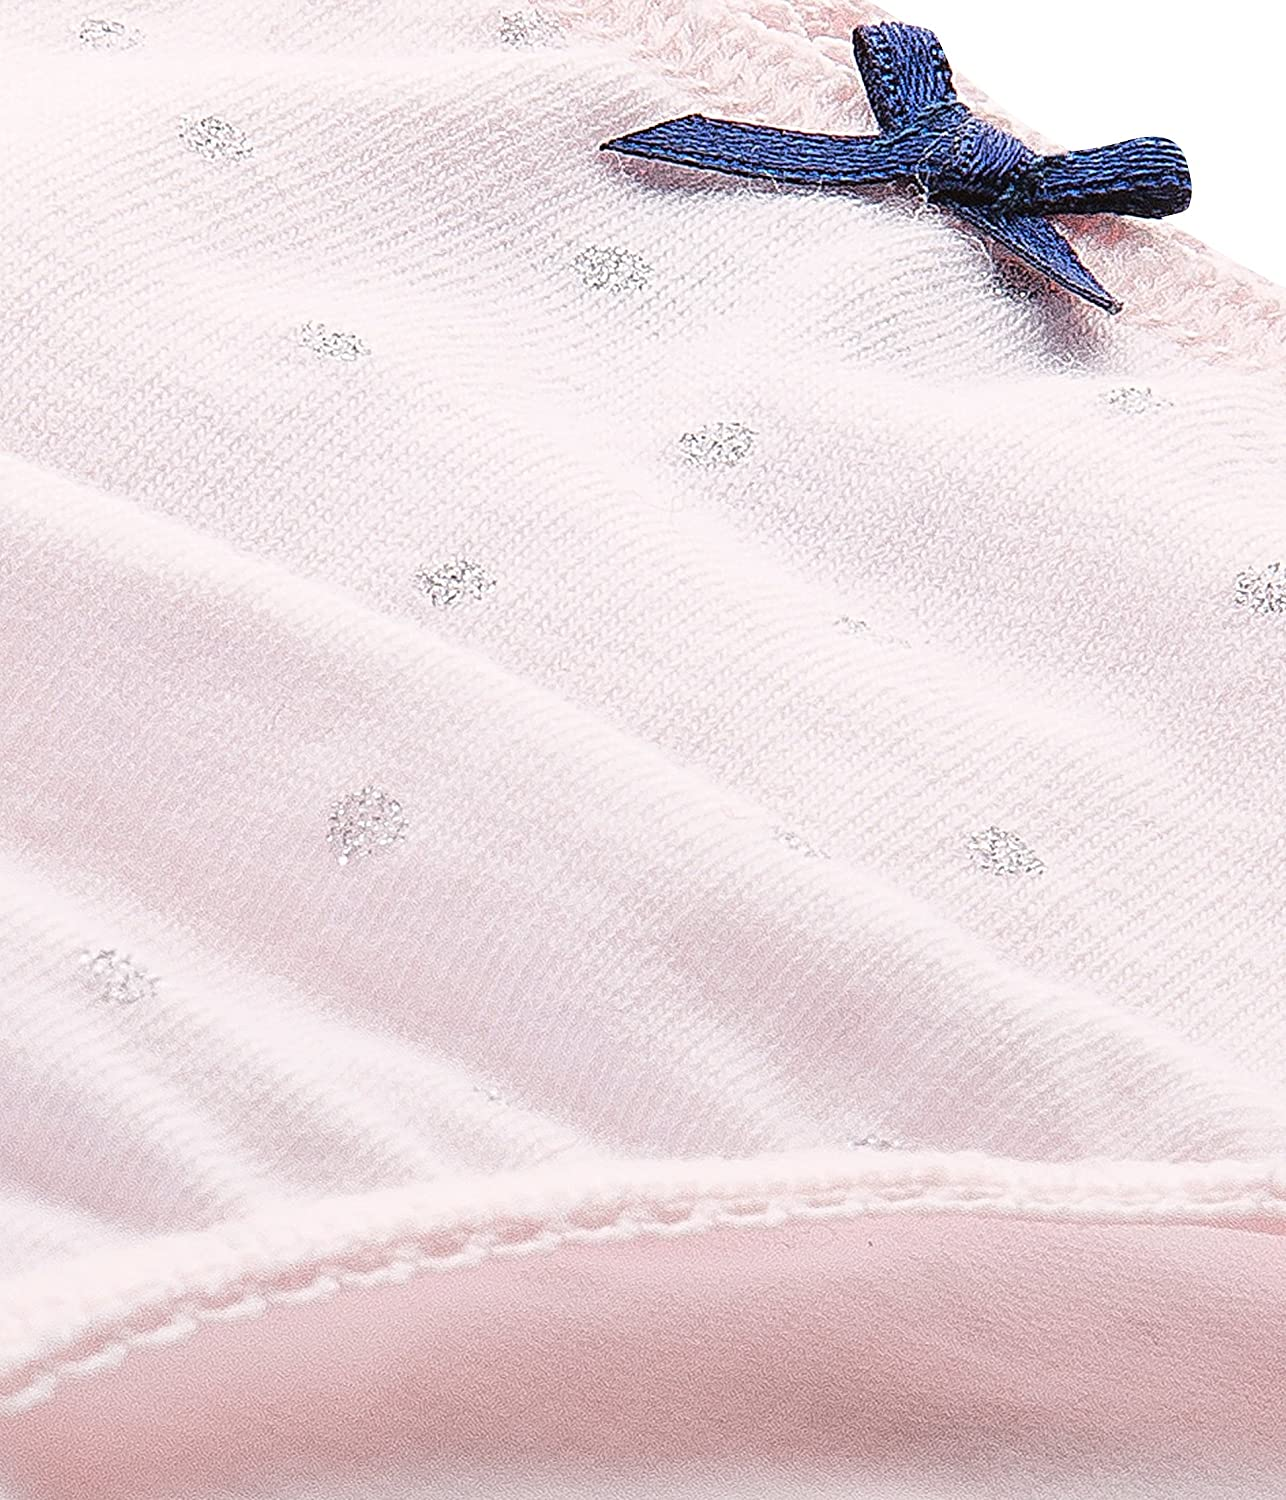 Solid Pink-Silver DOTS Sizes 8-18 Style 21470 Size 18 Style 21470 Petit Bateau Girls Underwear-Pantie 1 PK